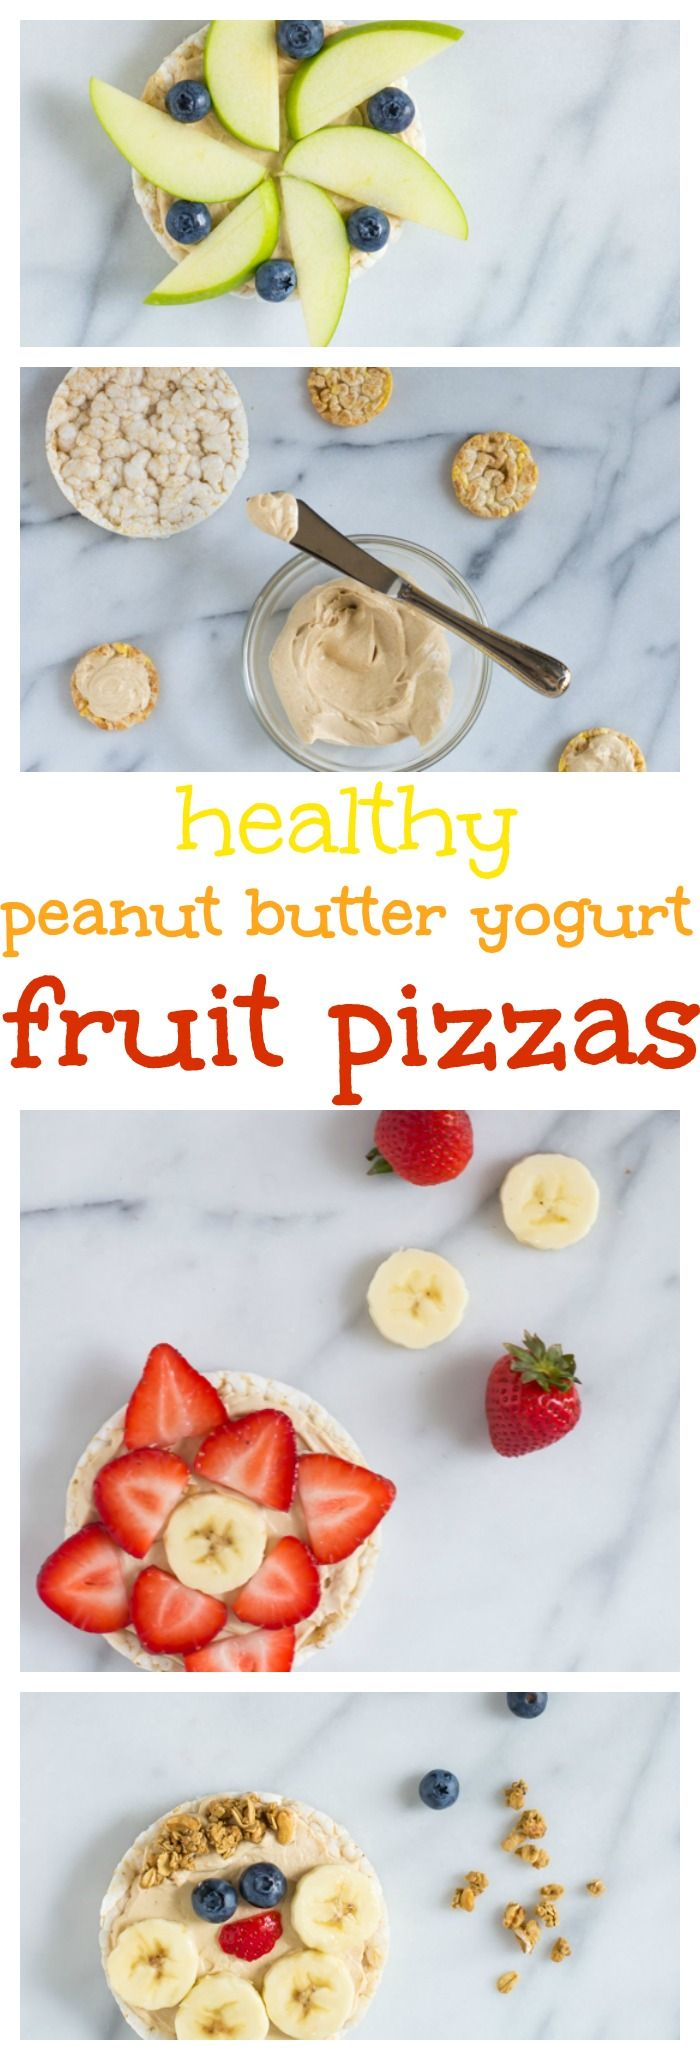 Healthy Peanut Butter-Yogurt Fruit Pizzas!! A perfect healthy after-school snack! Via @WellPlated